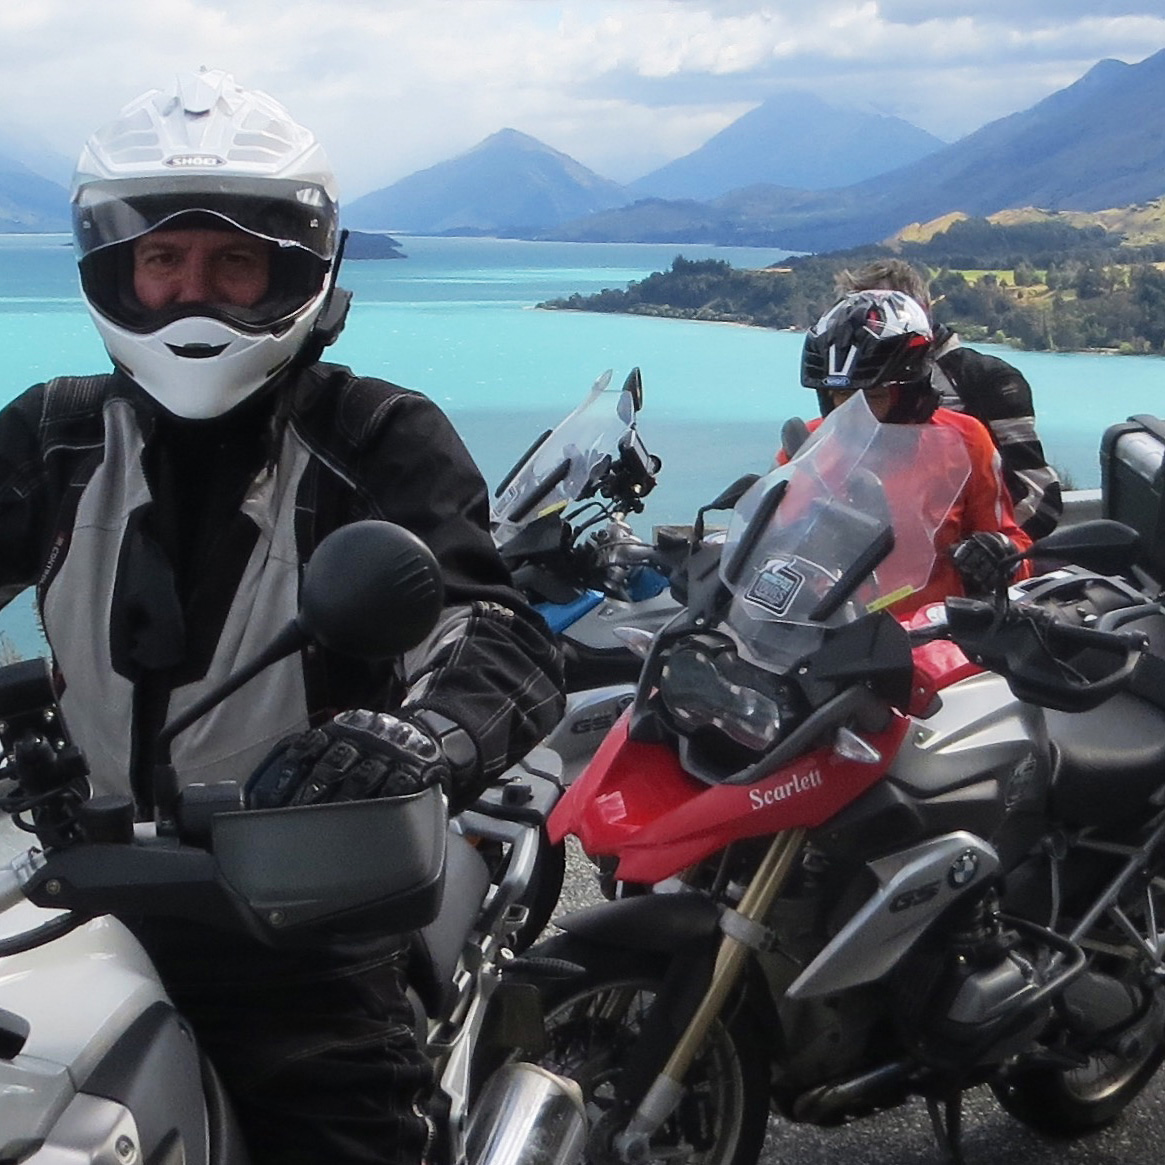 Northern California BMW Motorycle Tour in Lake Tahoe California by High Road Motorcycle